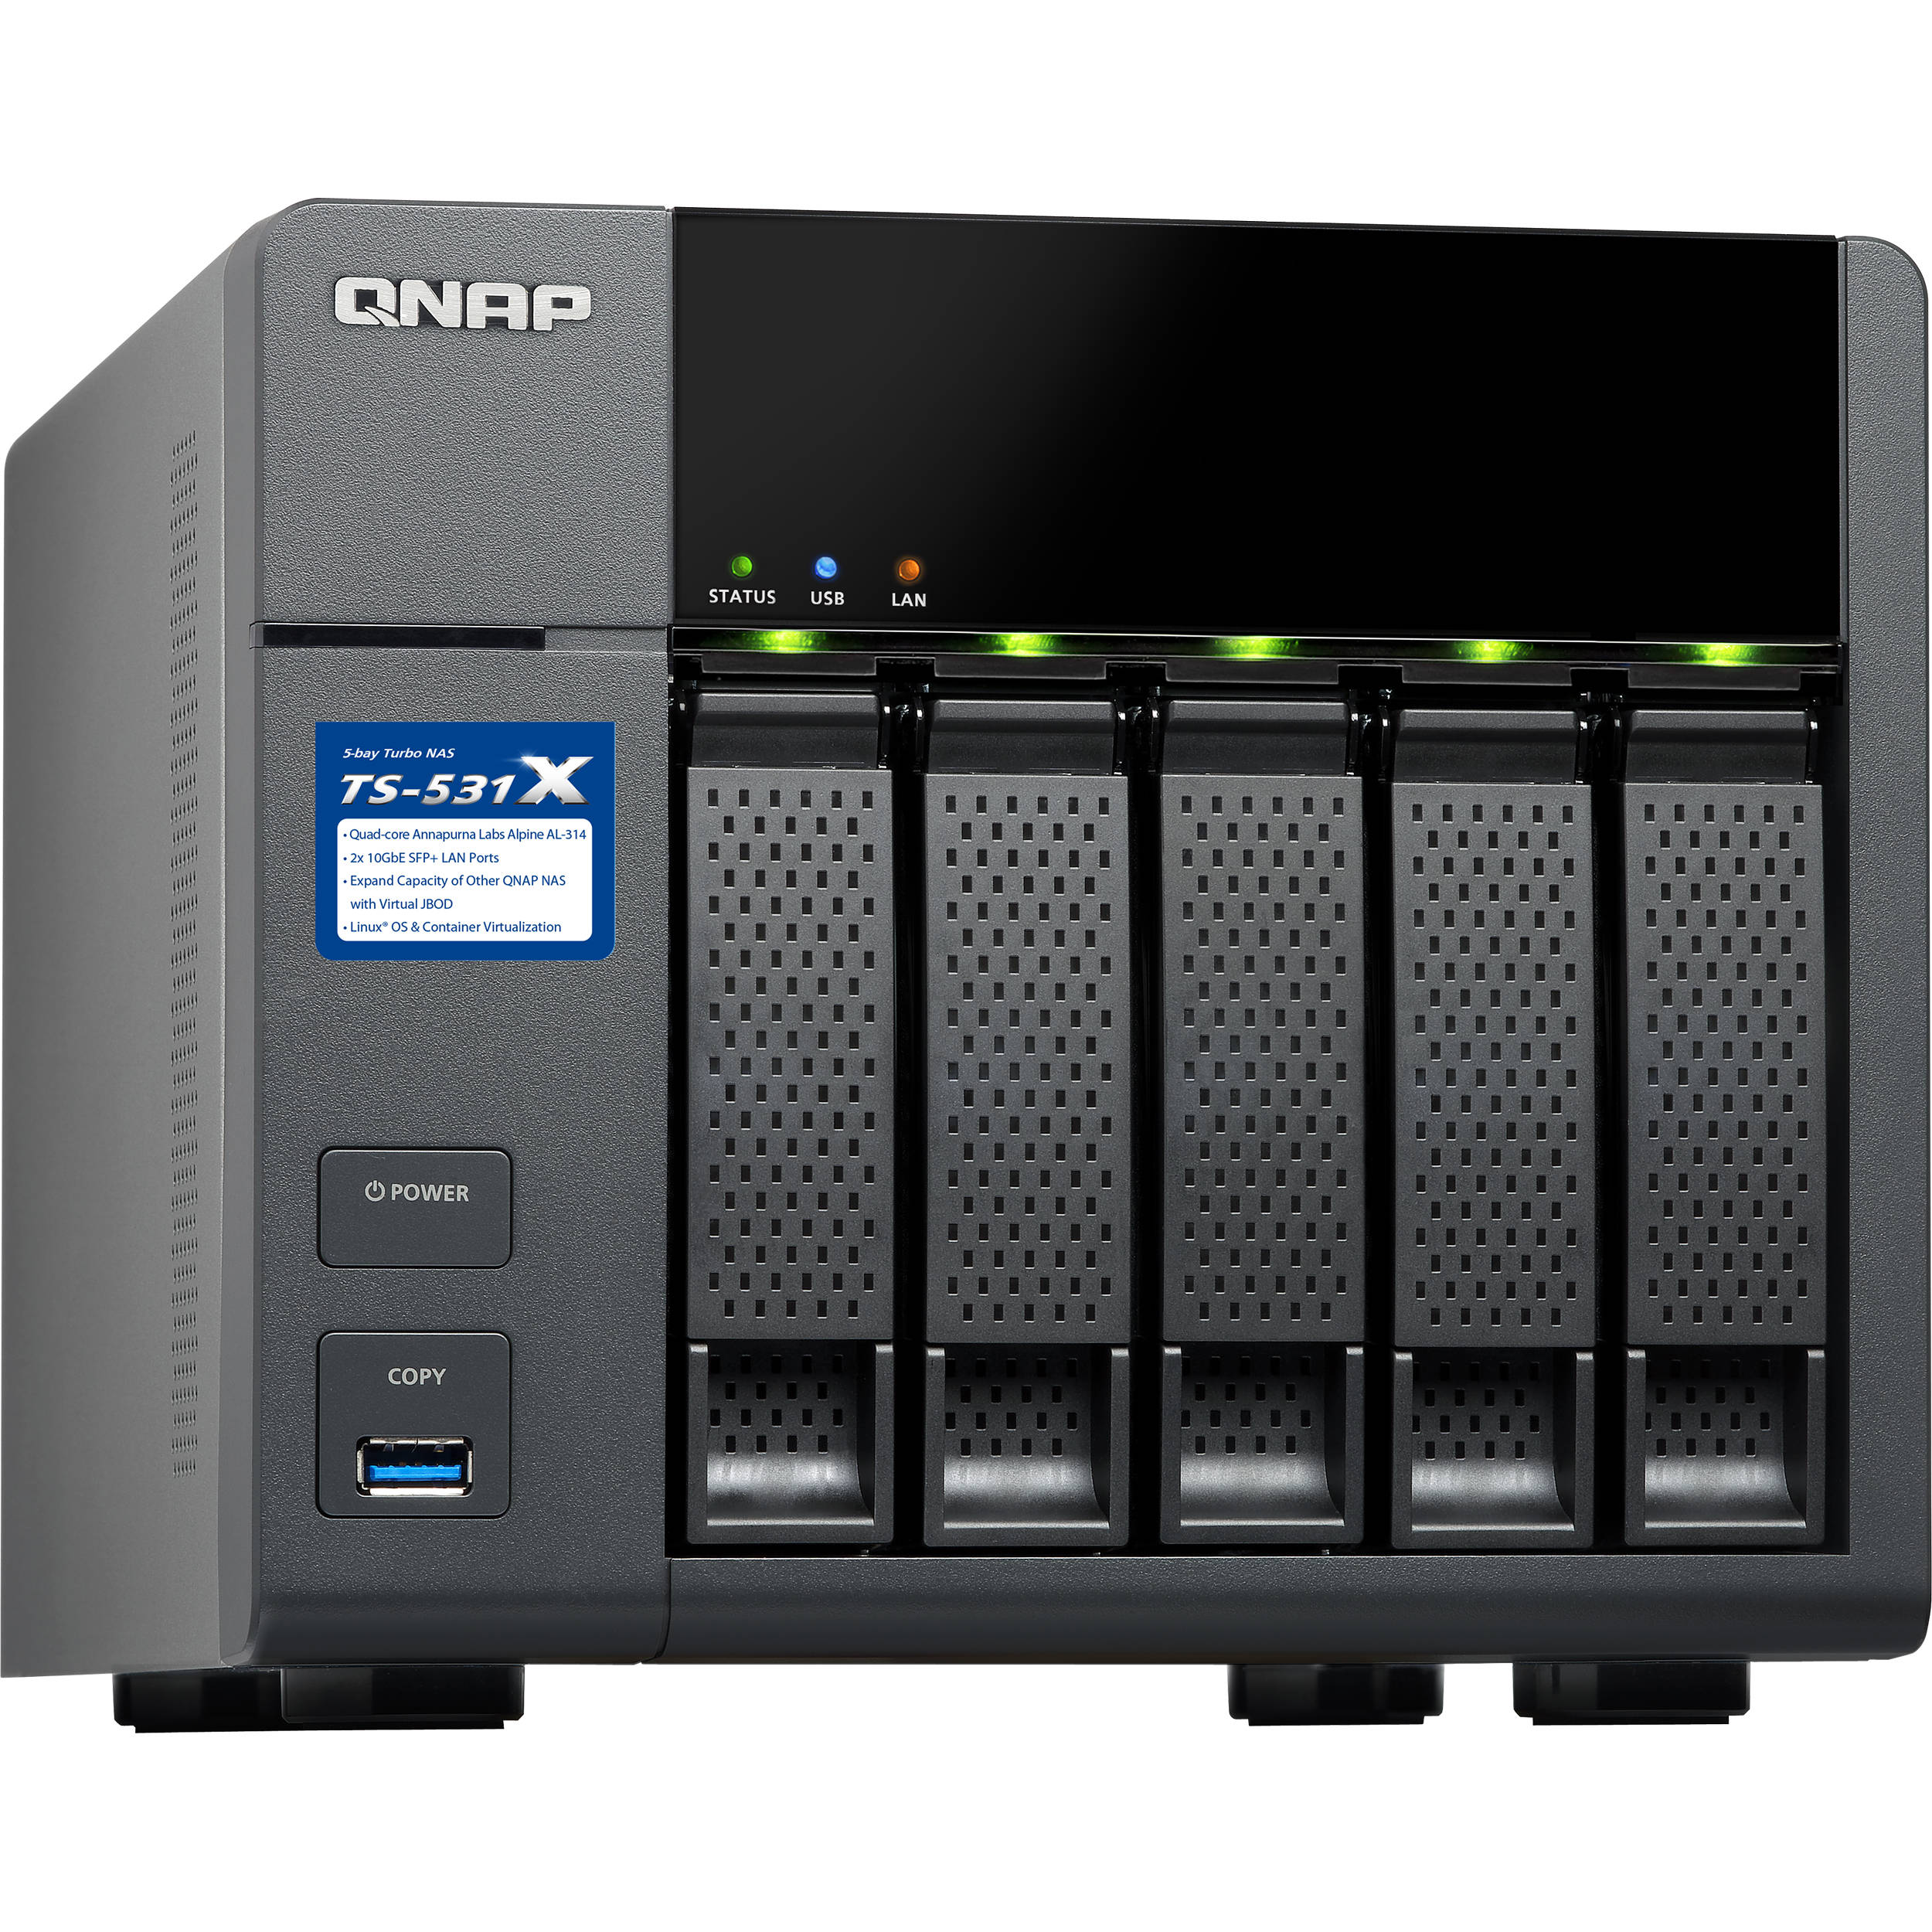 QNAP TS-531X Five-Bay NAS Enclosure